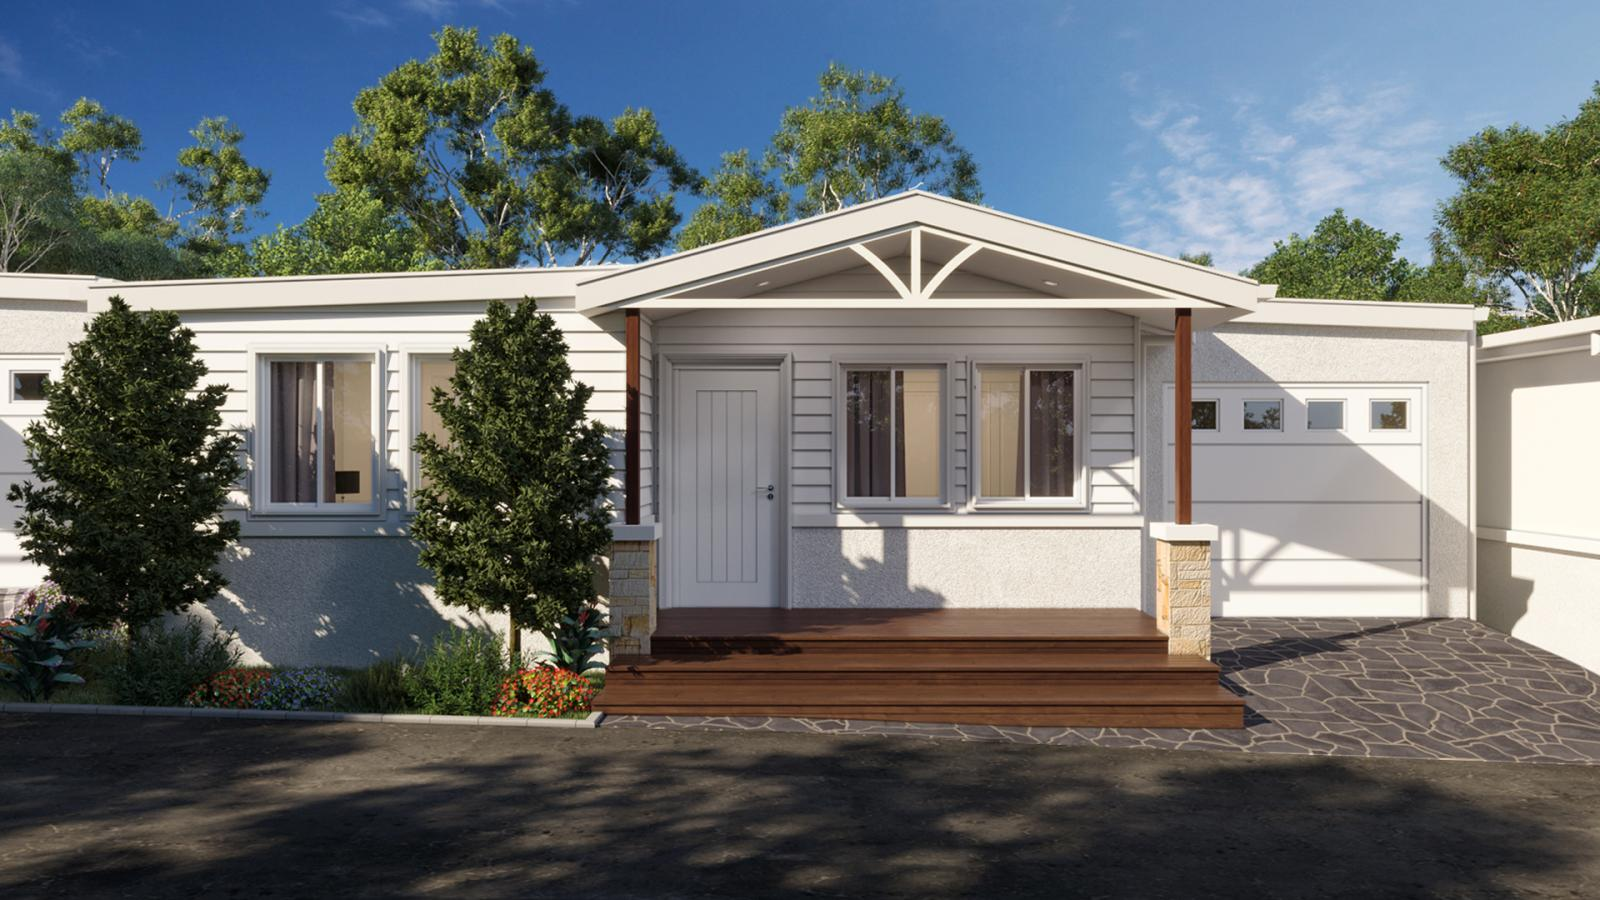 A new home at Ingenia's Sunnylake Shores community on the NSW Central Coast